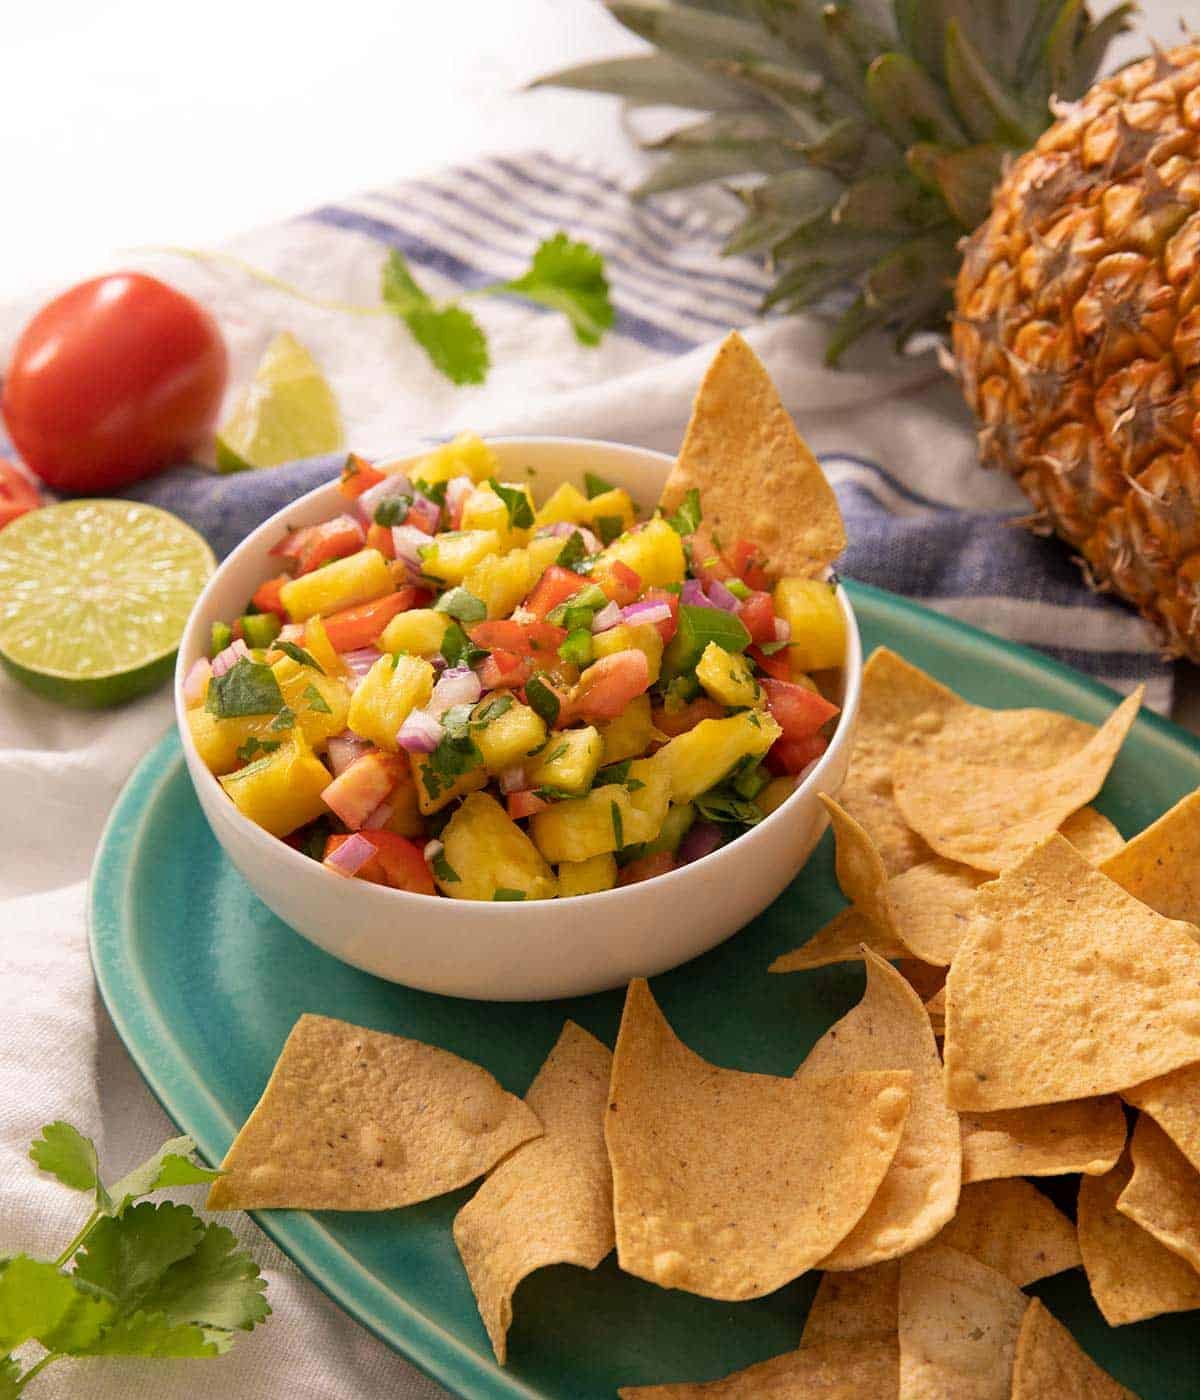 Pineapple salsa in a bowl with tortilla chips at the side